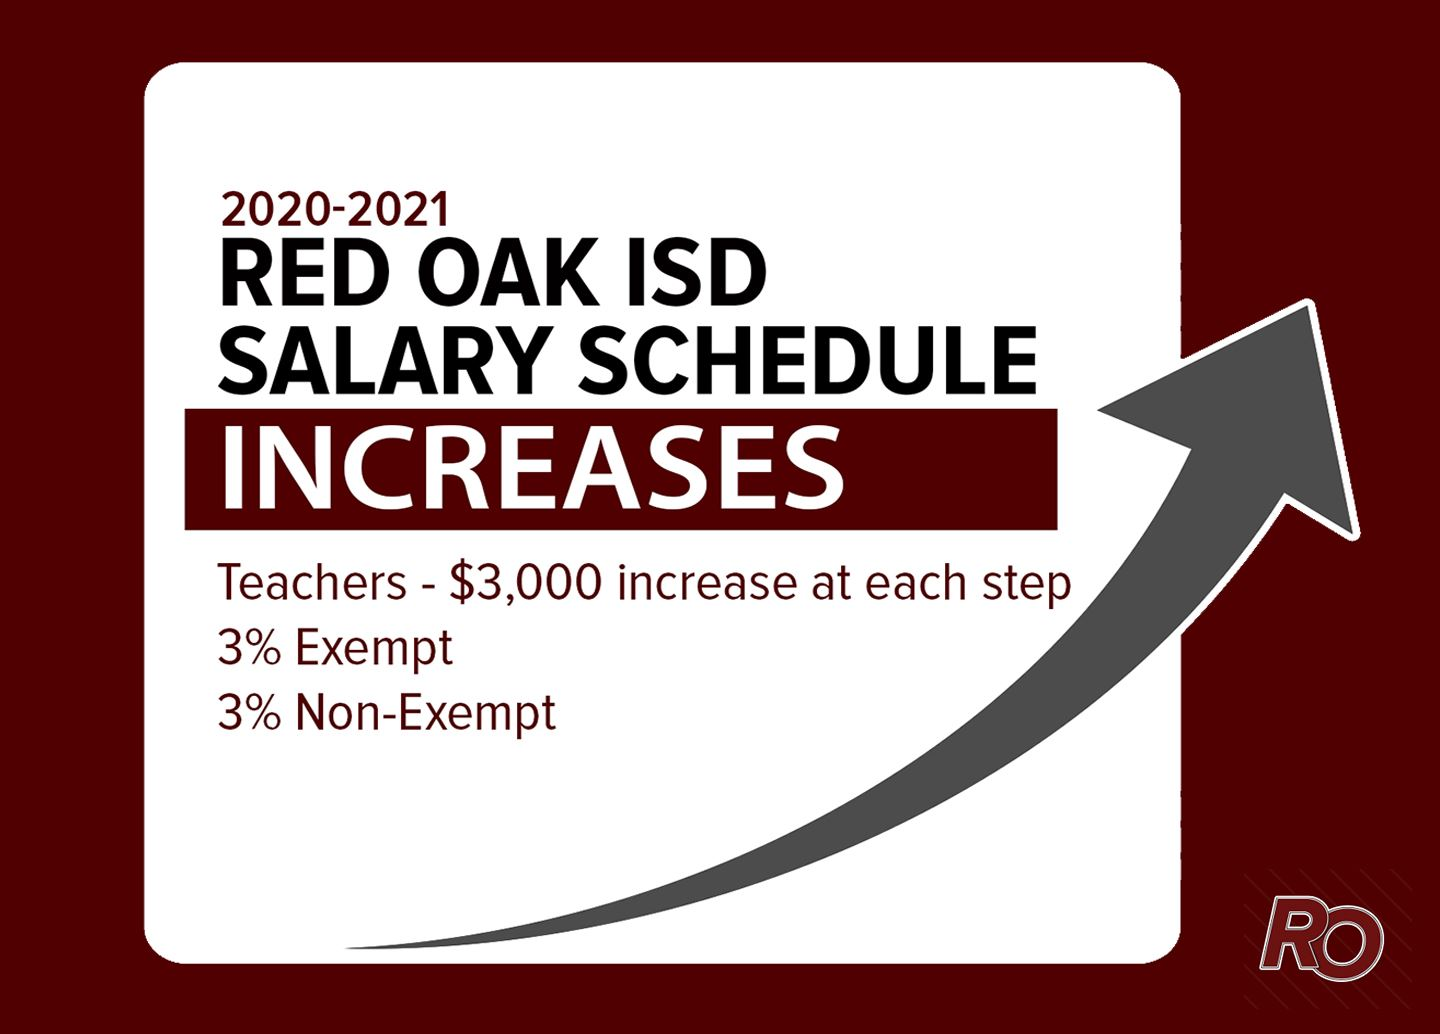 2020-21 ROISD Salary Raises: $3000 for teachers & 3% for other employees